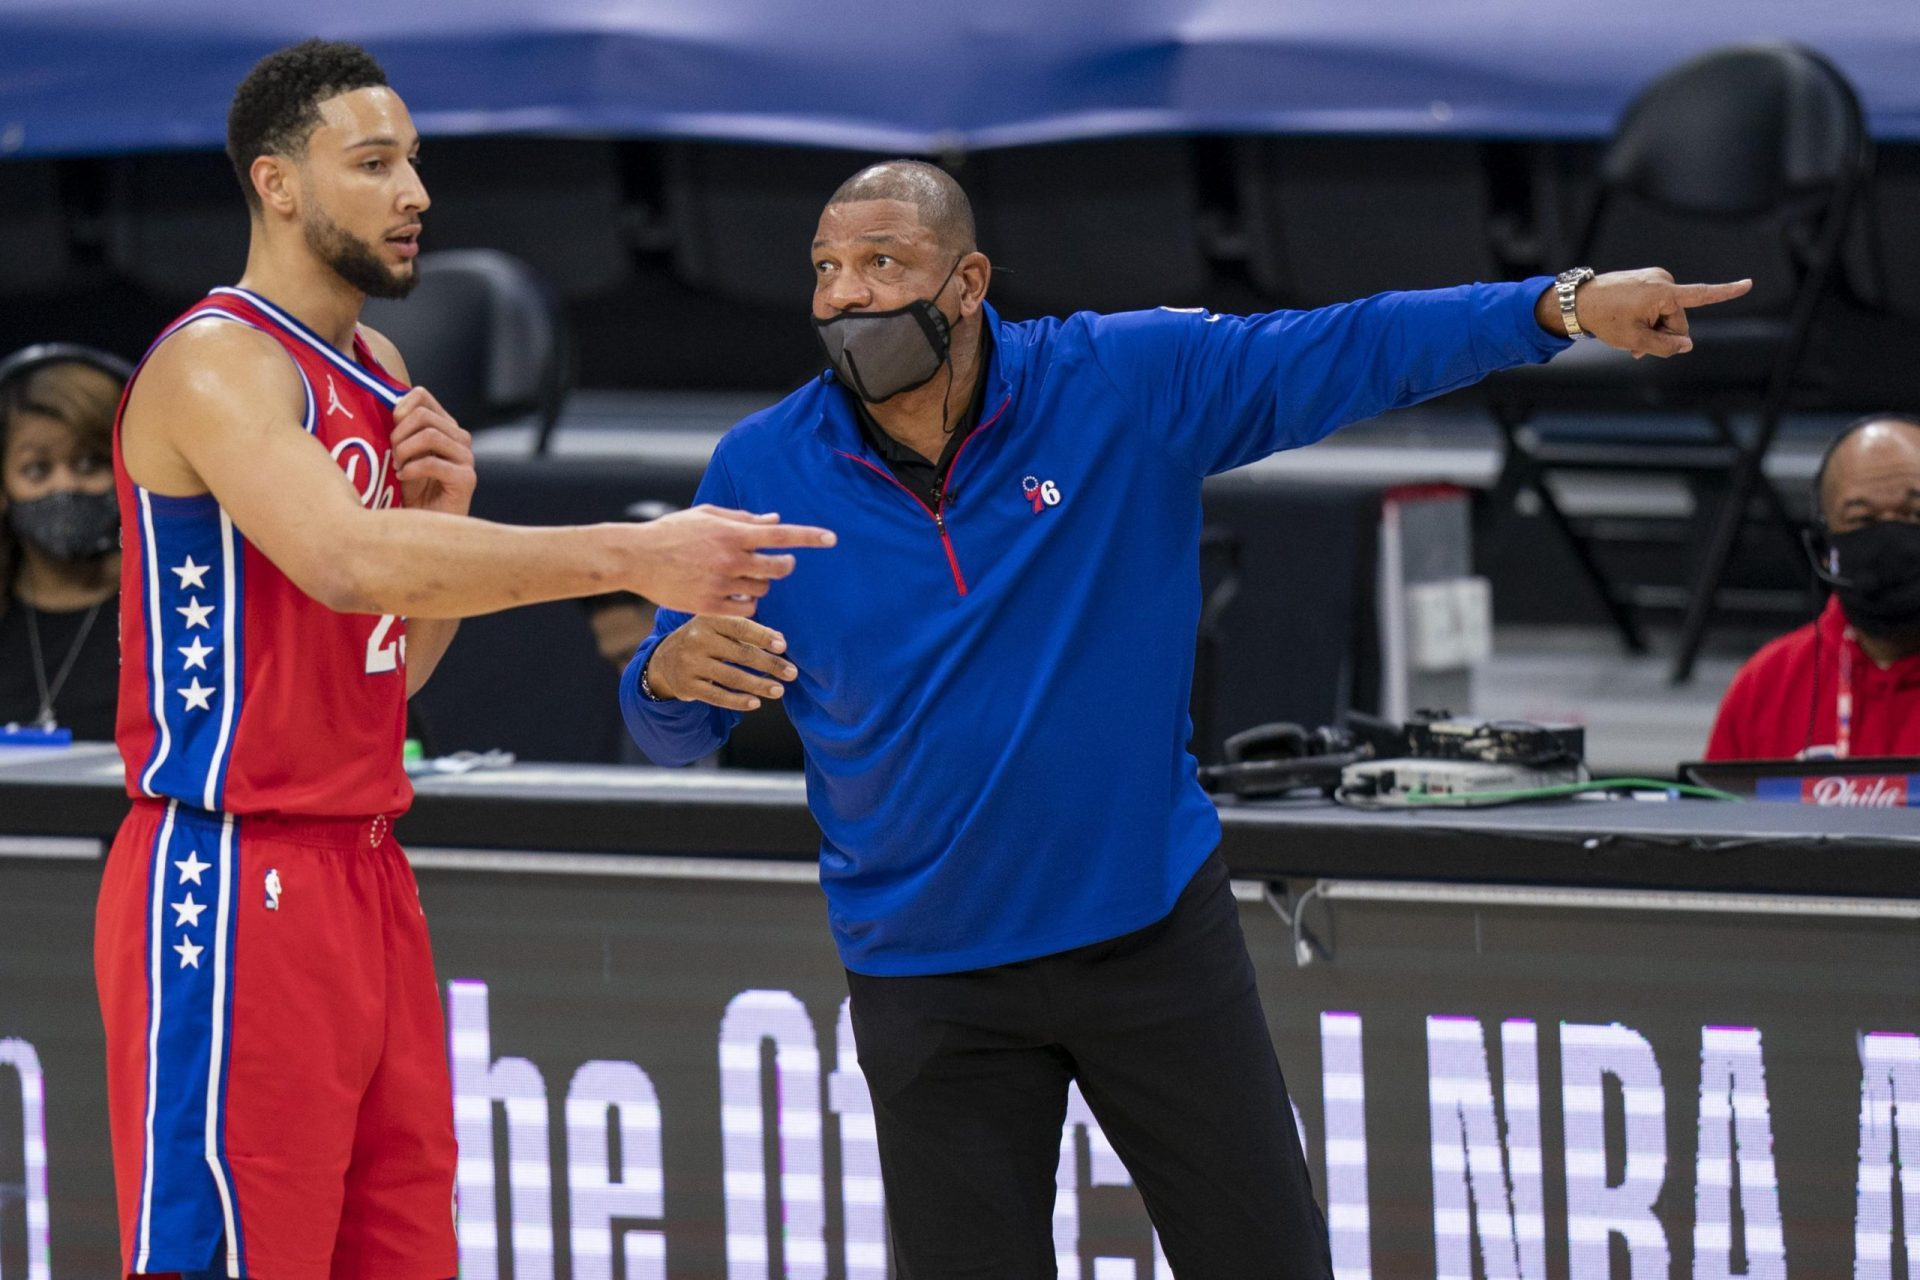 Ben Simmons reportedly wanted 76ers coach Doc Rivers to apologize for his comments